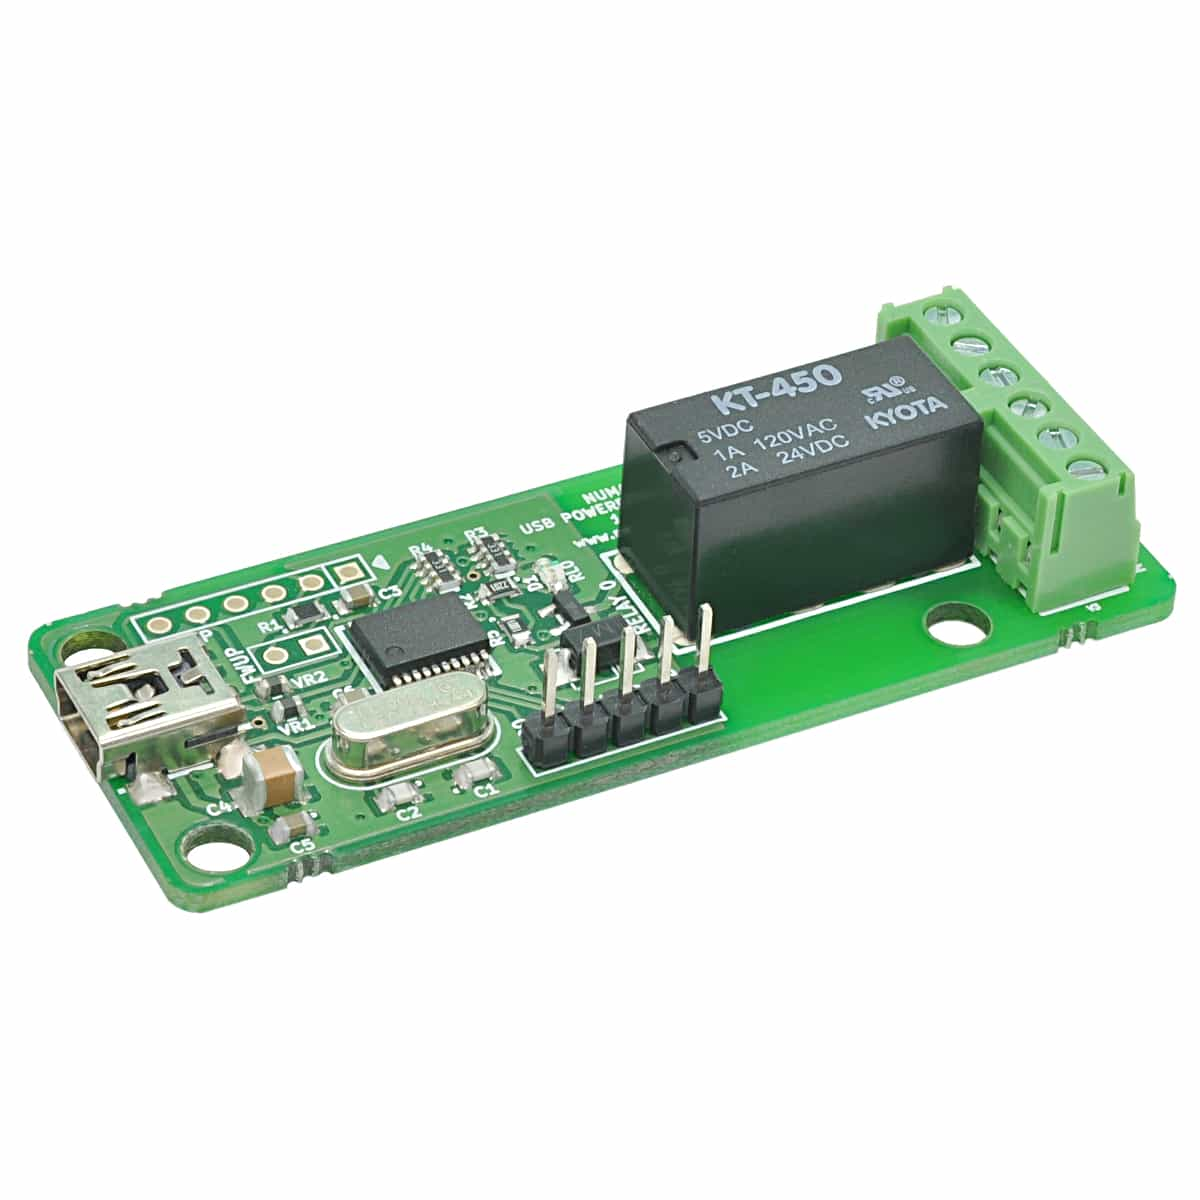 1 Channel USB Powered Relay Module With GPIO | Numato Lab